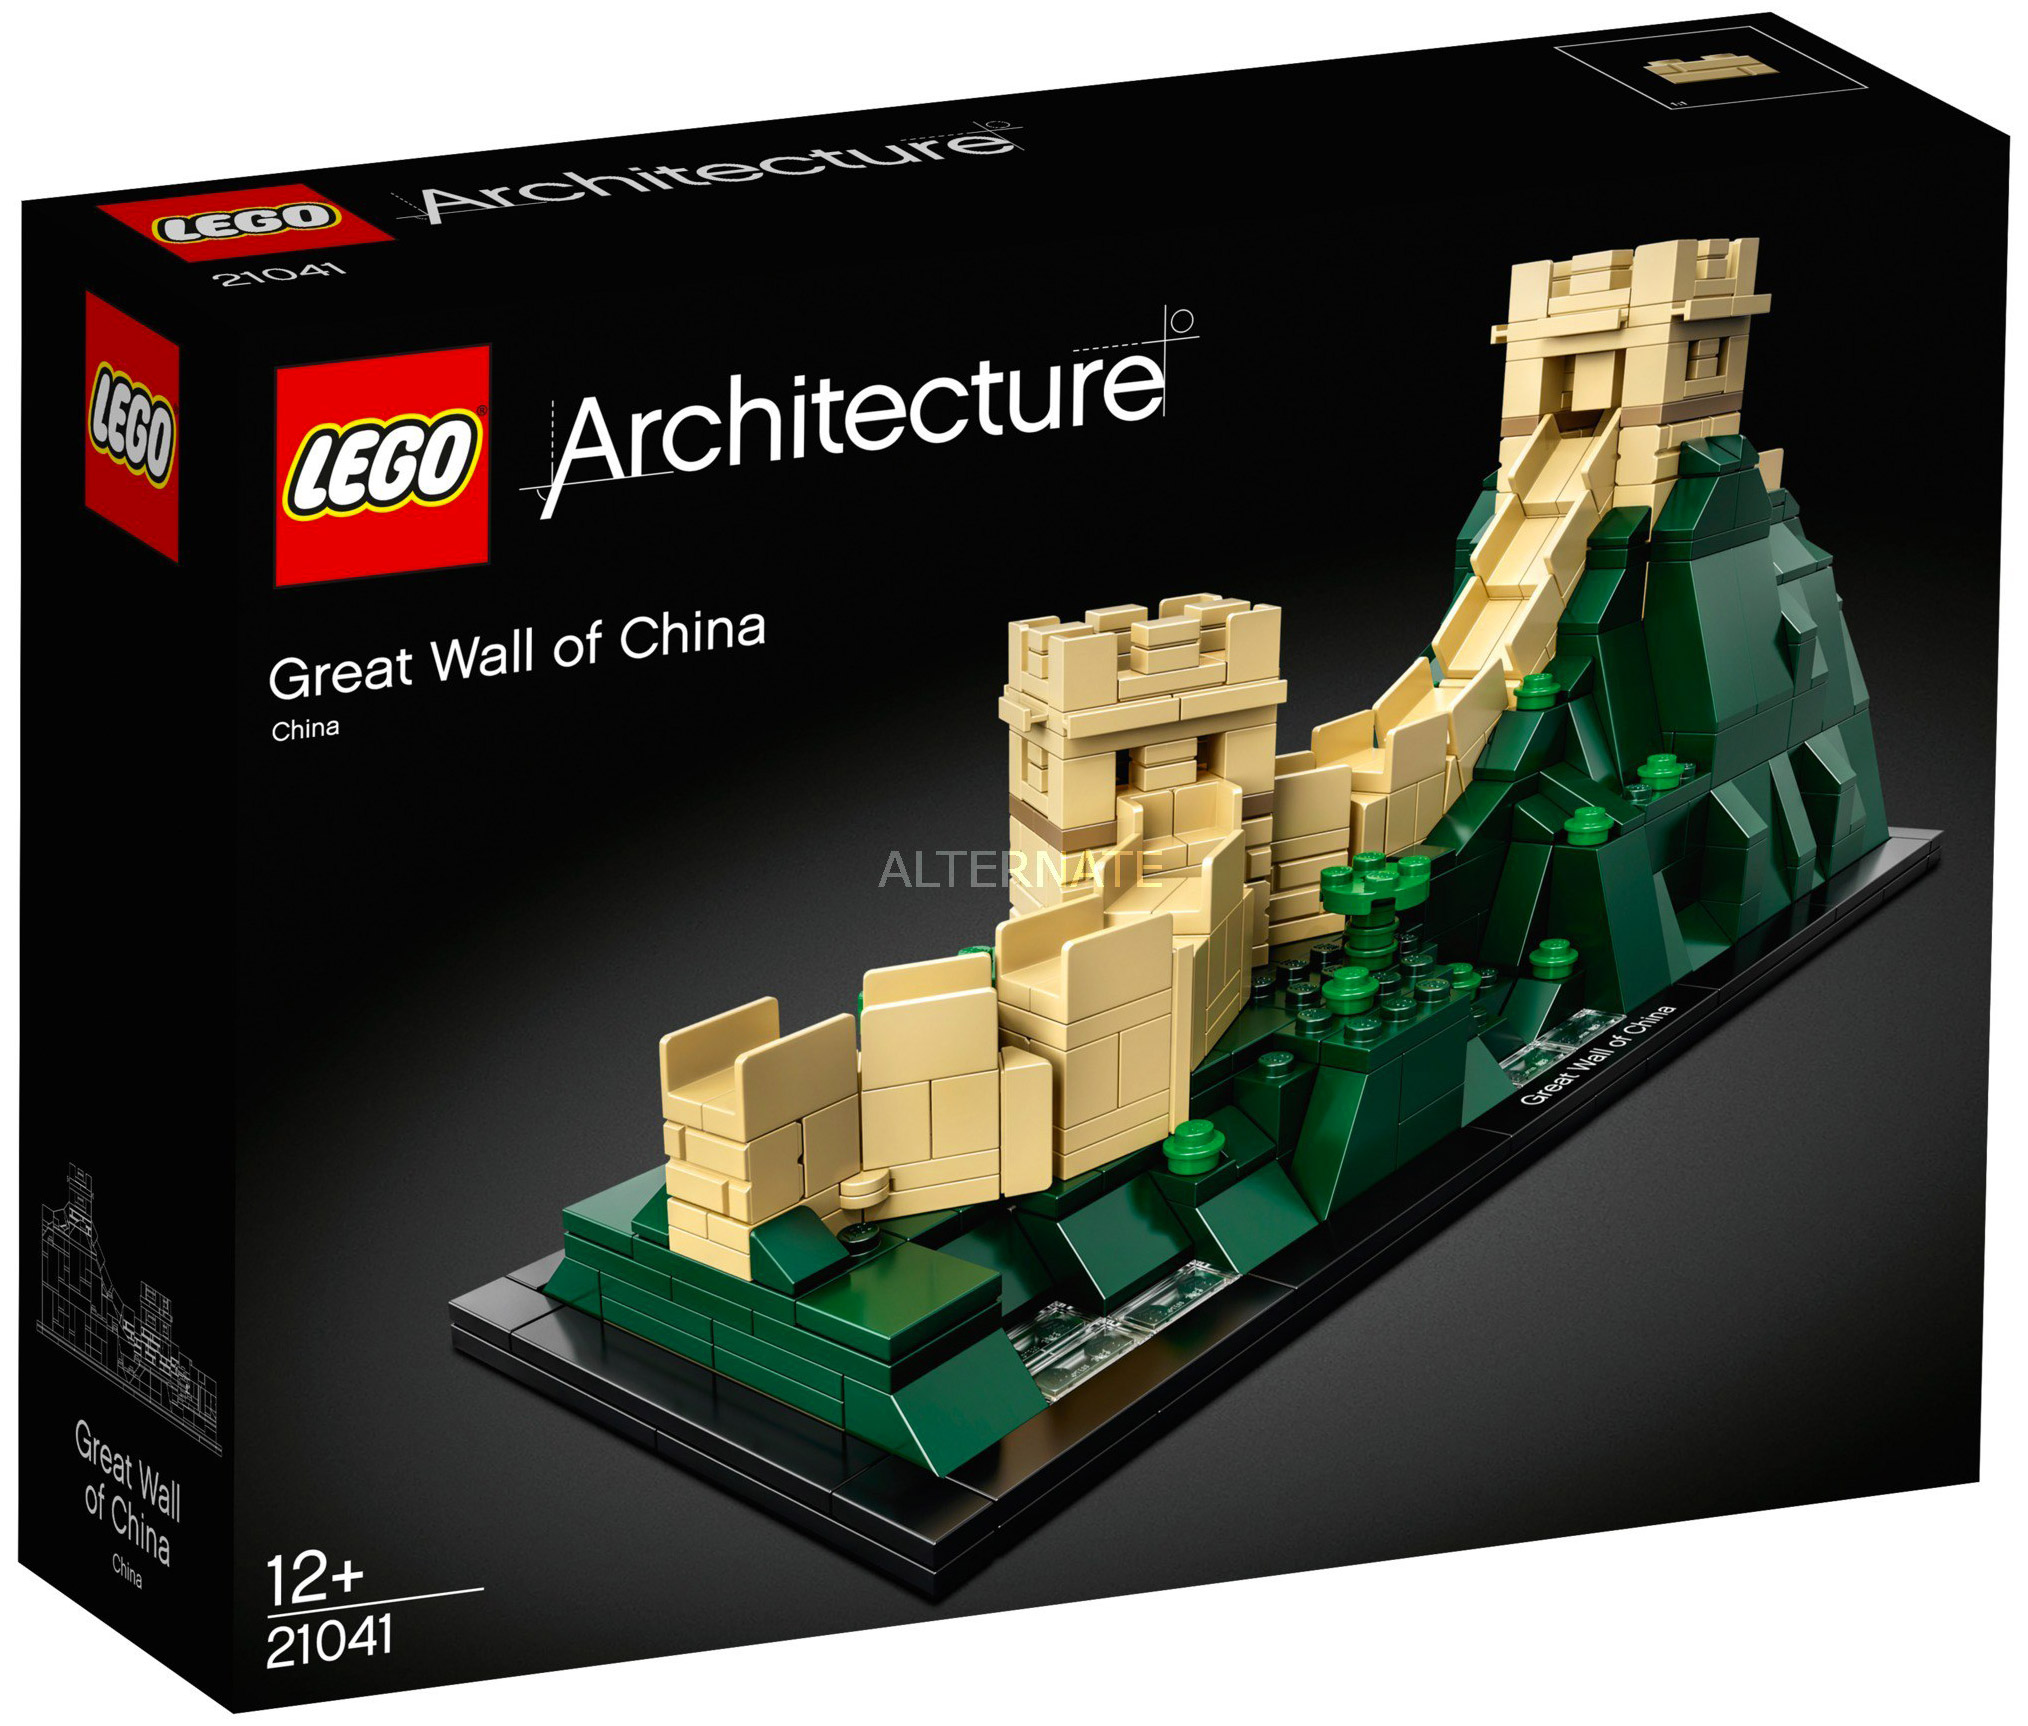 Nouveau LEGO Architecture 21041 Great Wall of China Avril 2018